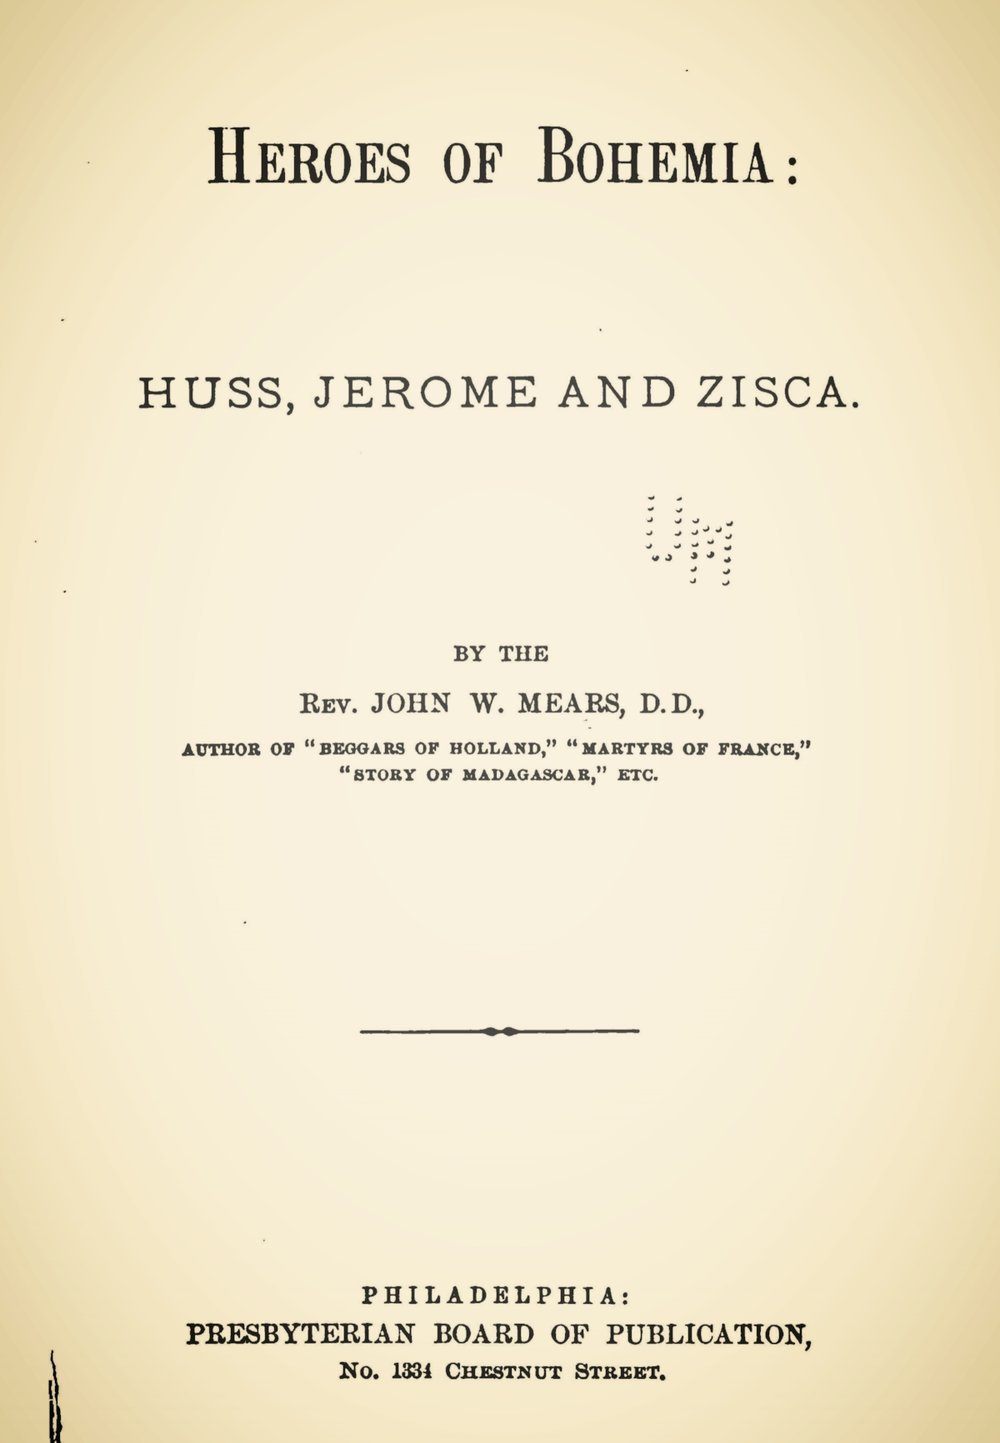 Mears, John William, Heroes of Bohemia Title Page.jpg